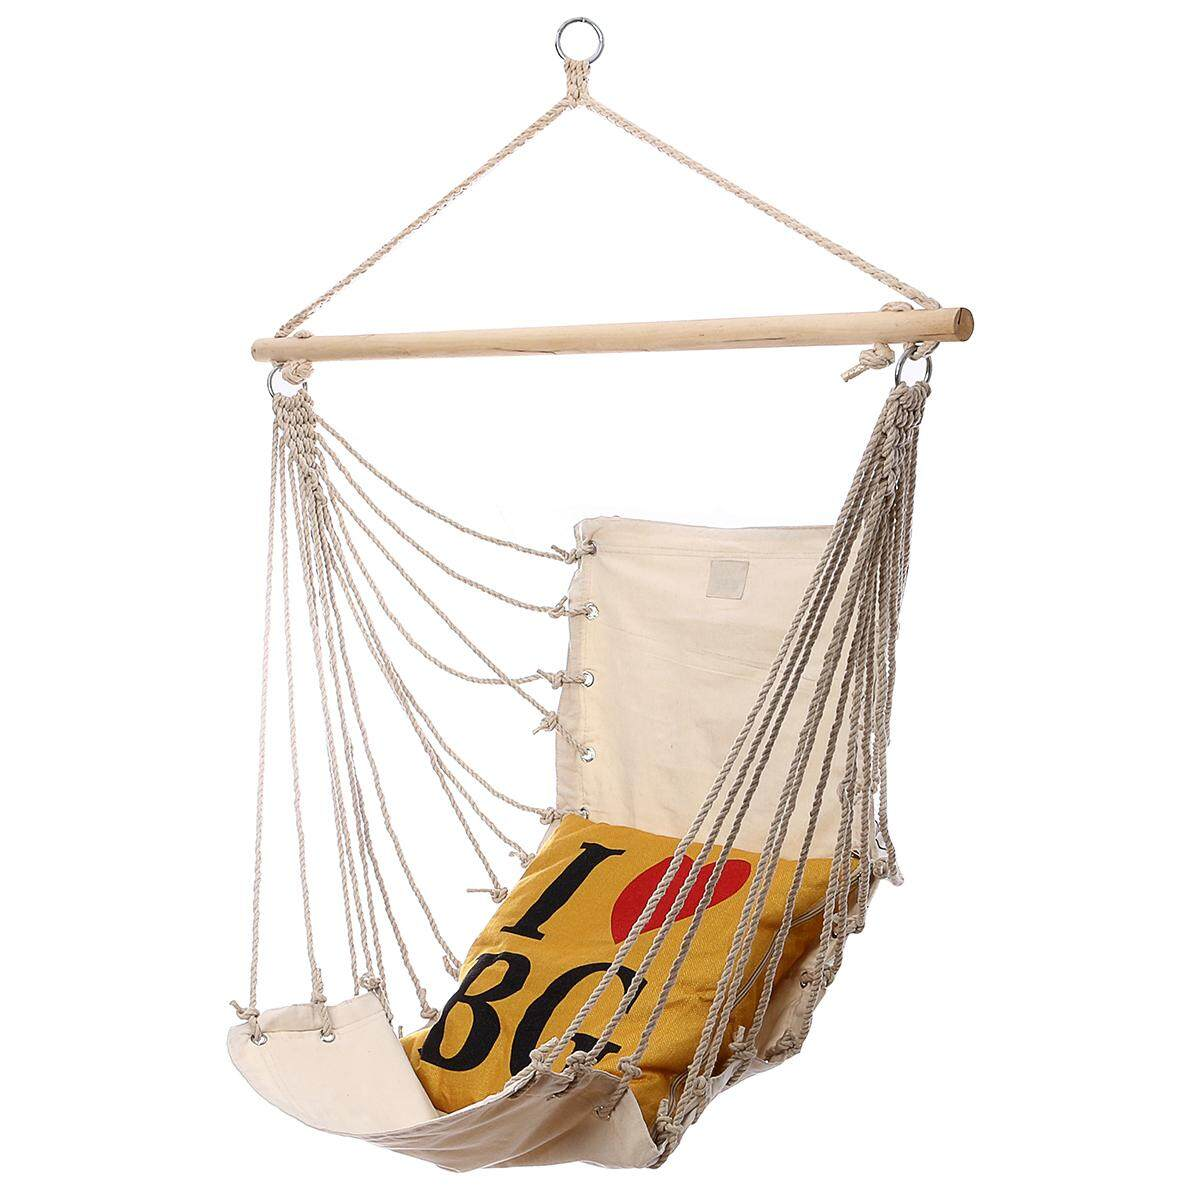 32x17 Hanging Hammock Chair Swing Outdoor Indoor Camping Garden White Canvas - intl